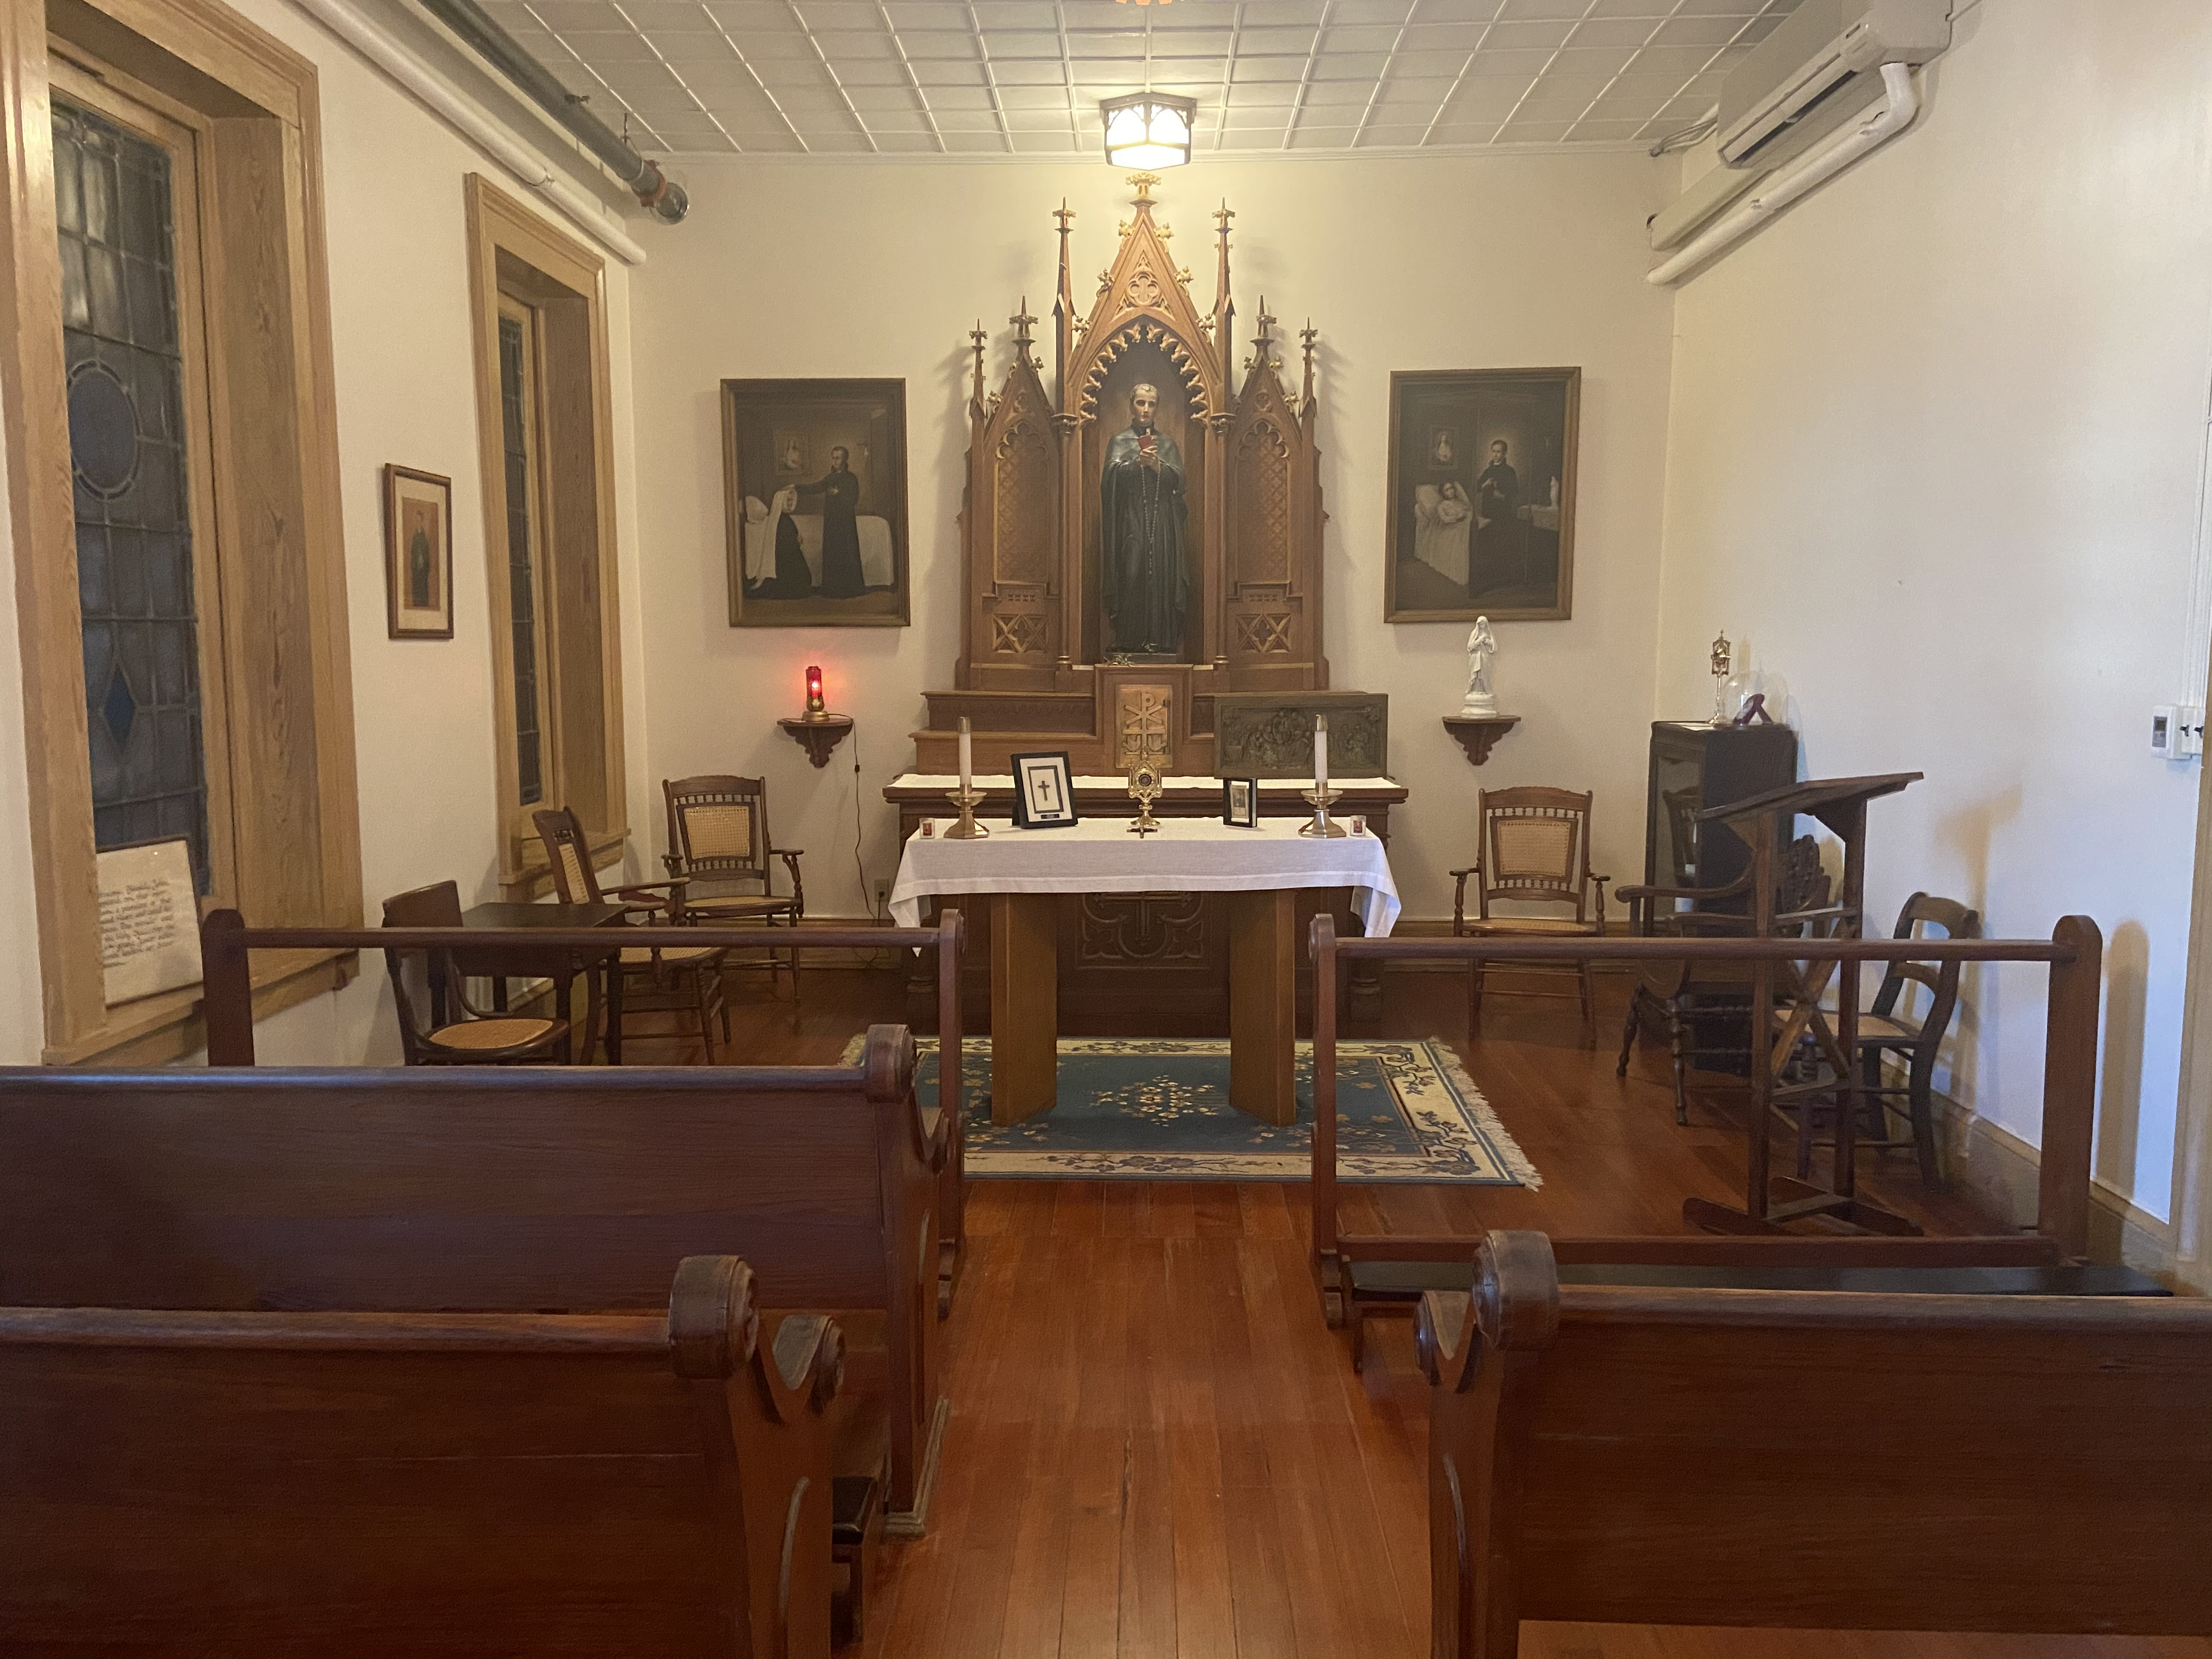 The Shrine of St. John Berchmans is the site of the original infirmary where novice, Mary Wilson, was cured in 1866.  Her miraculous recovery was attributed to Blessed John Berchmans, thus resulting in his canonization in 1888.